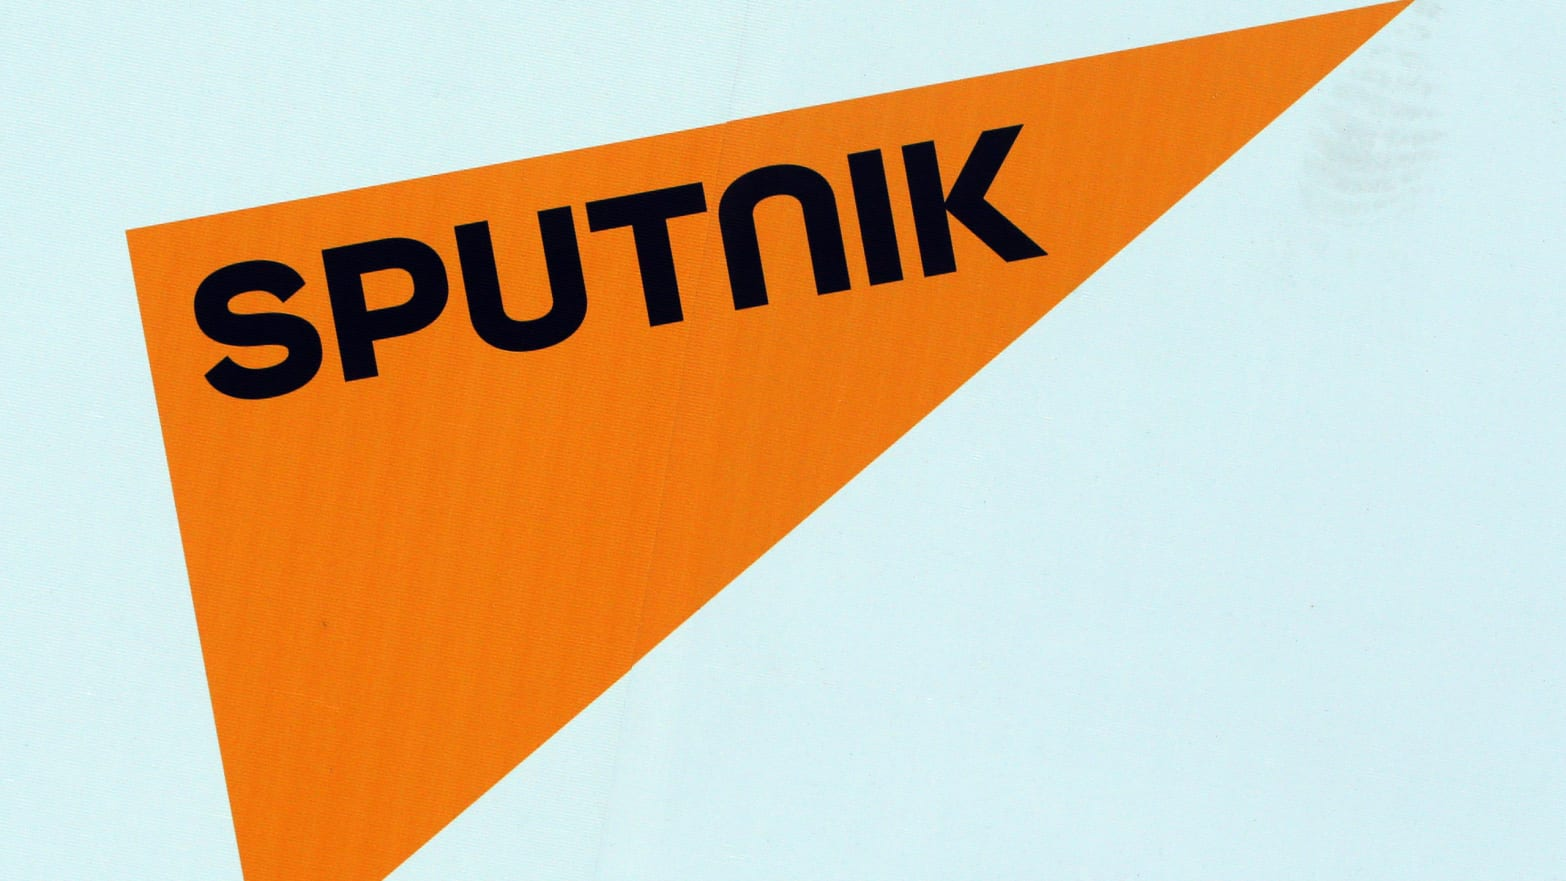 The logo of Russian state news agency Sputnik is seen on a board at the St. Petersburg International Economic Forum 2017 (SPIEF 2017) in St. Petersburg, Russia, June 1, 2017. Picture taken June 1, 2017. REUTERS/Sergei Karpukhin - RC17834DEB30